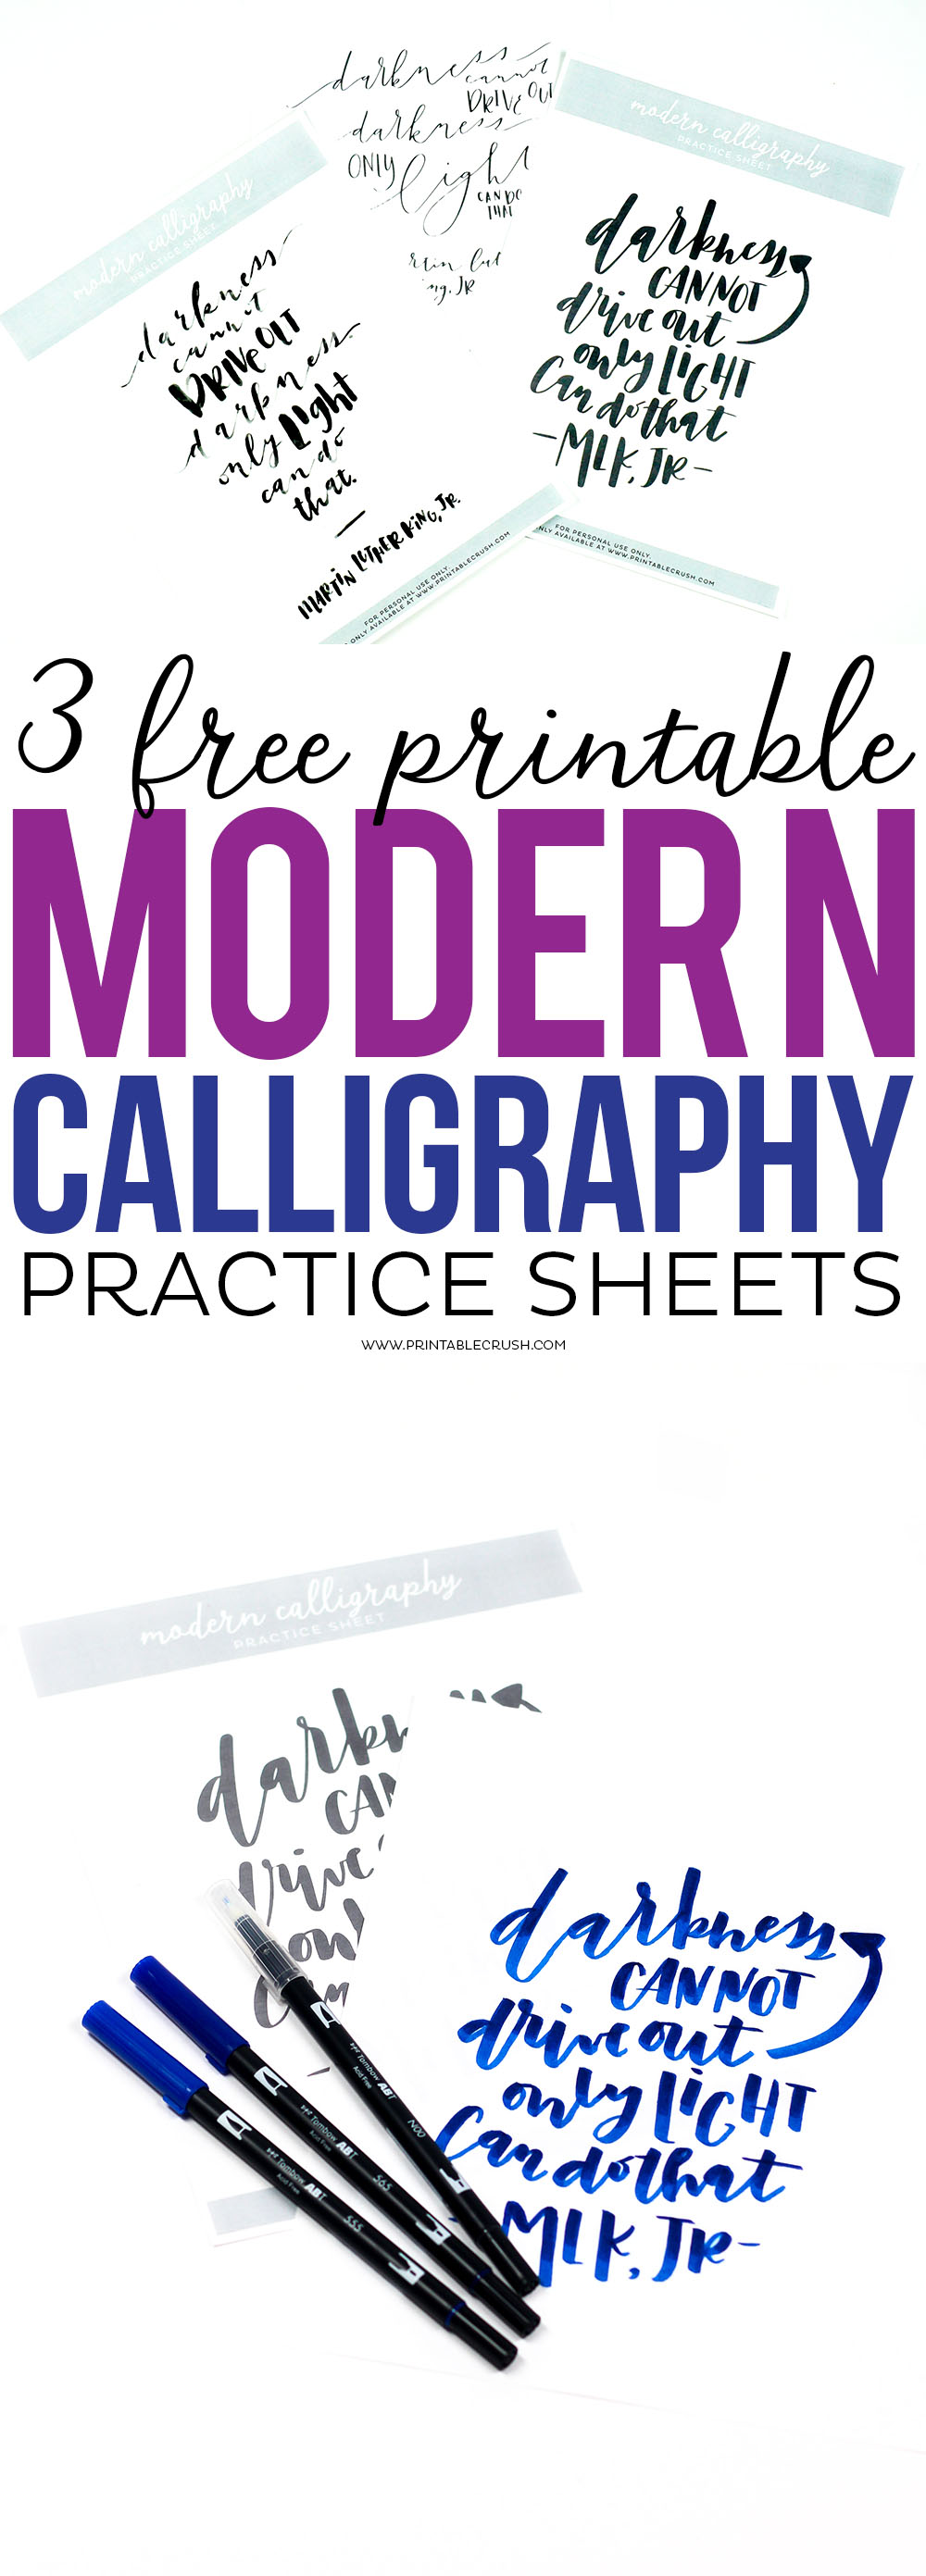 Download these 3 Free Printable Modern Calligraphy Practice Sheets to try 3 different lettering styles and techniques. Plus, discover new calligraphy materials you need to try!